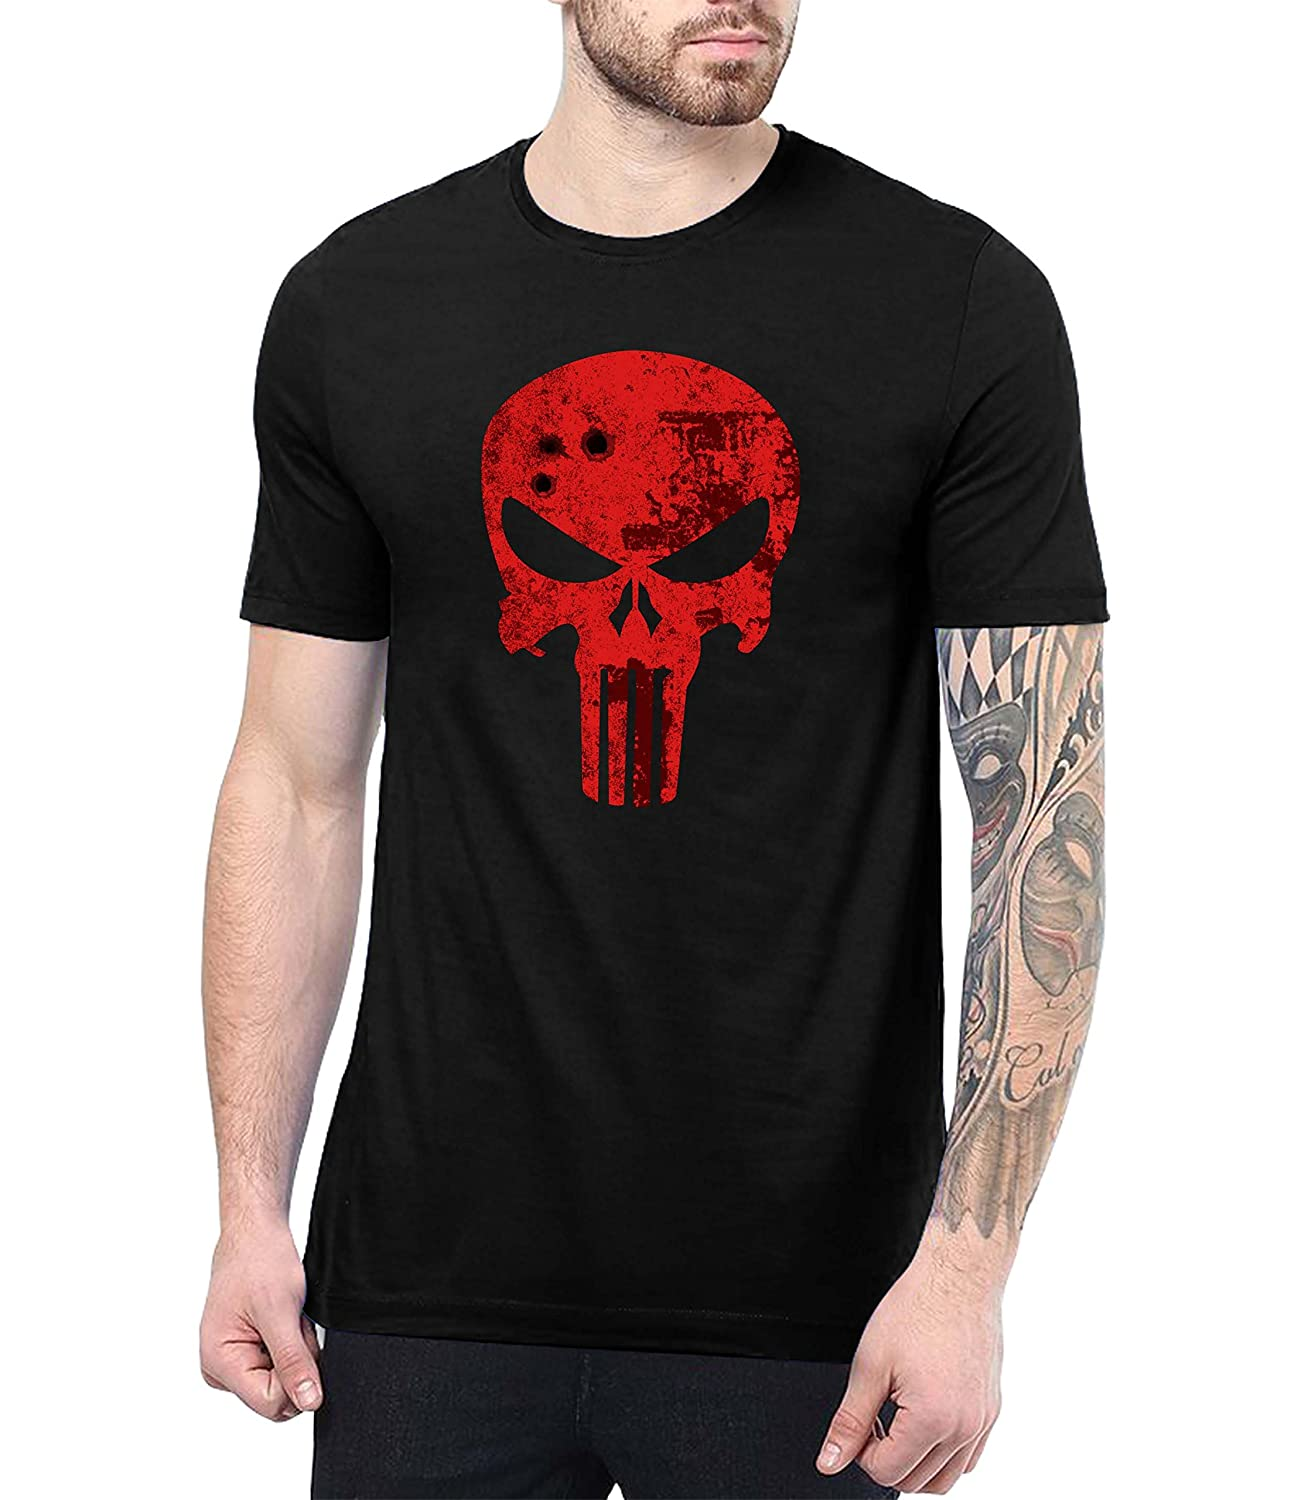 7ceef6524 The Punisher shirt is made up of 100% ring- spun Cotton for Superior  Softness. You can expect lasting durability with this 100% cotton